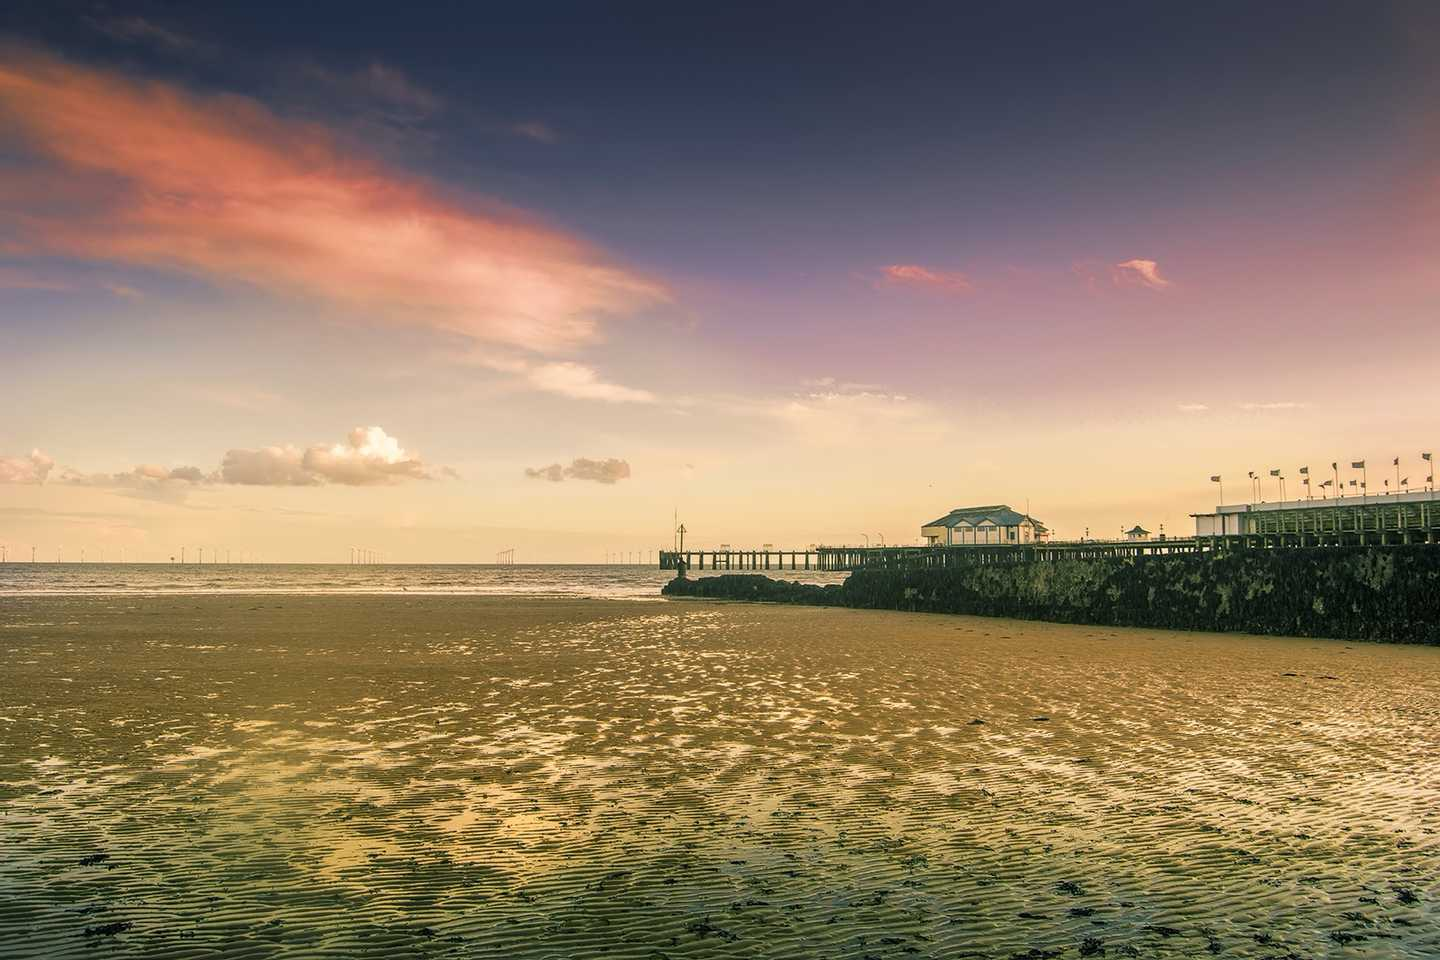 A sunset with Clacton-on-Sea pier in the distance